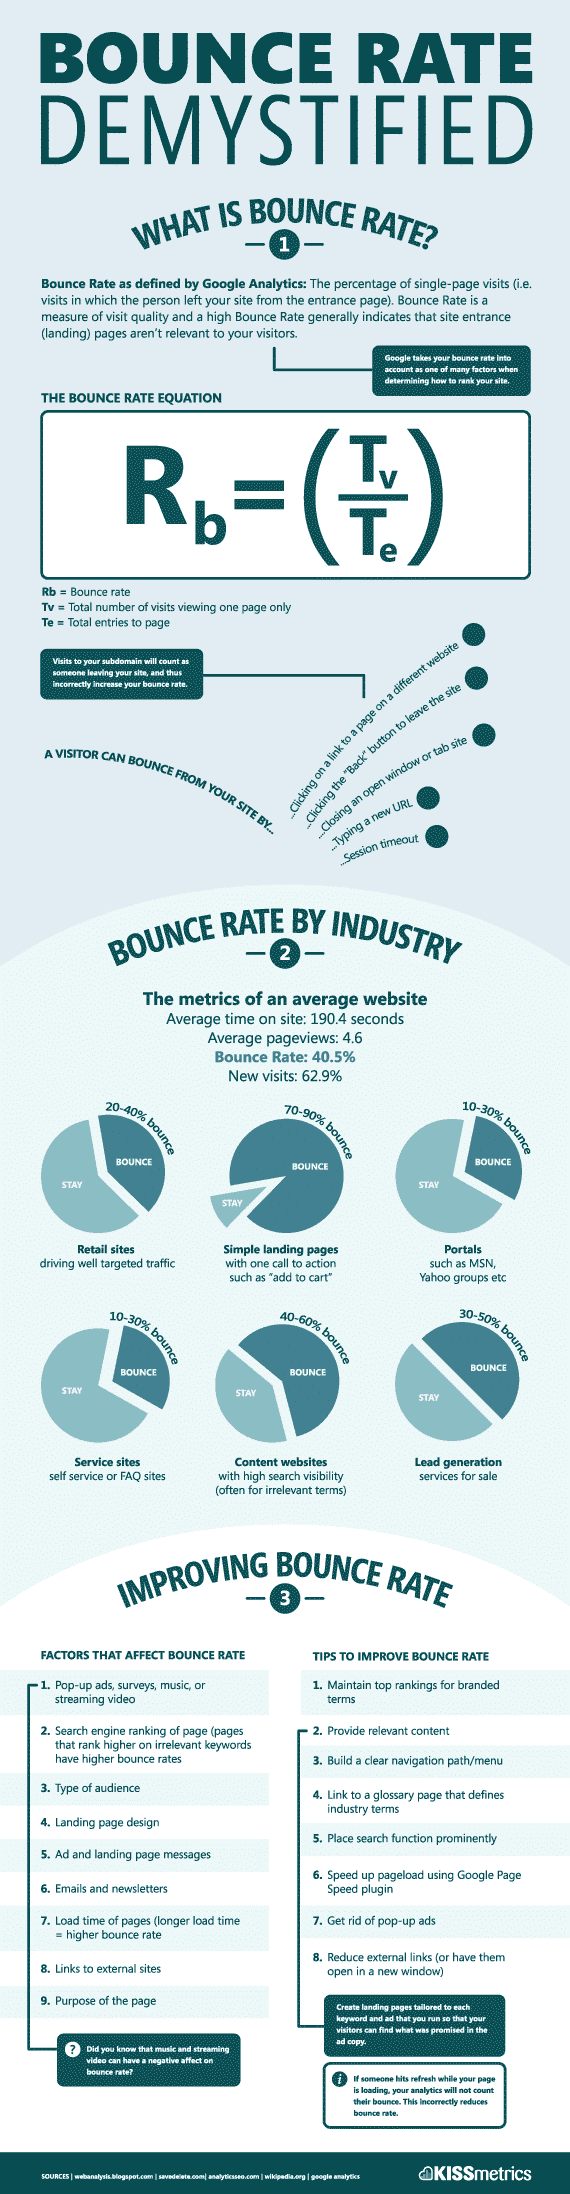 Uncover the mystery, and learn more about bounce rates in this awesome infographic.